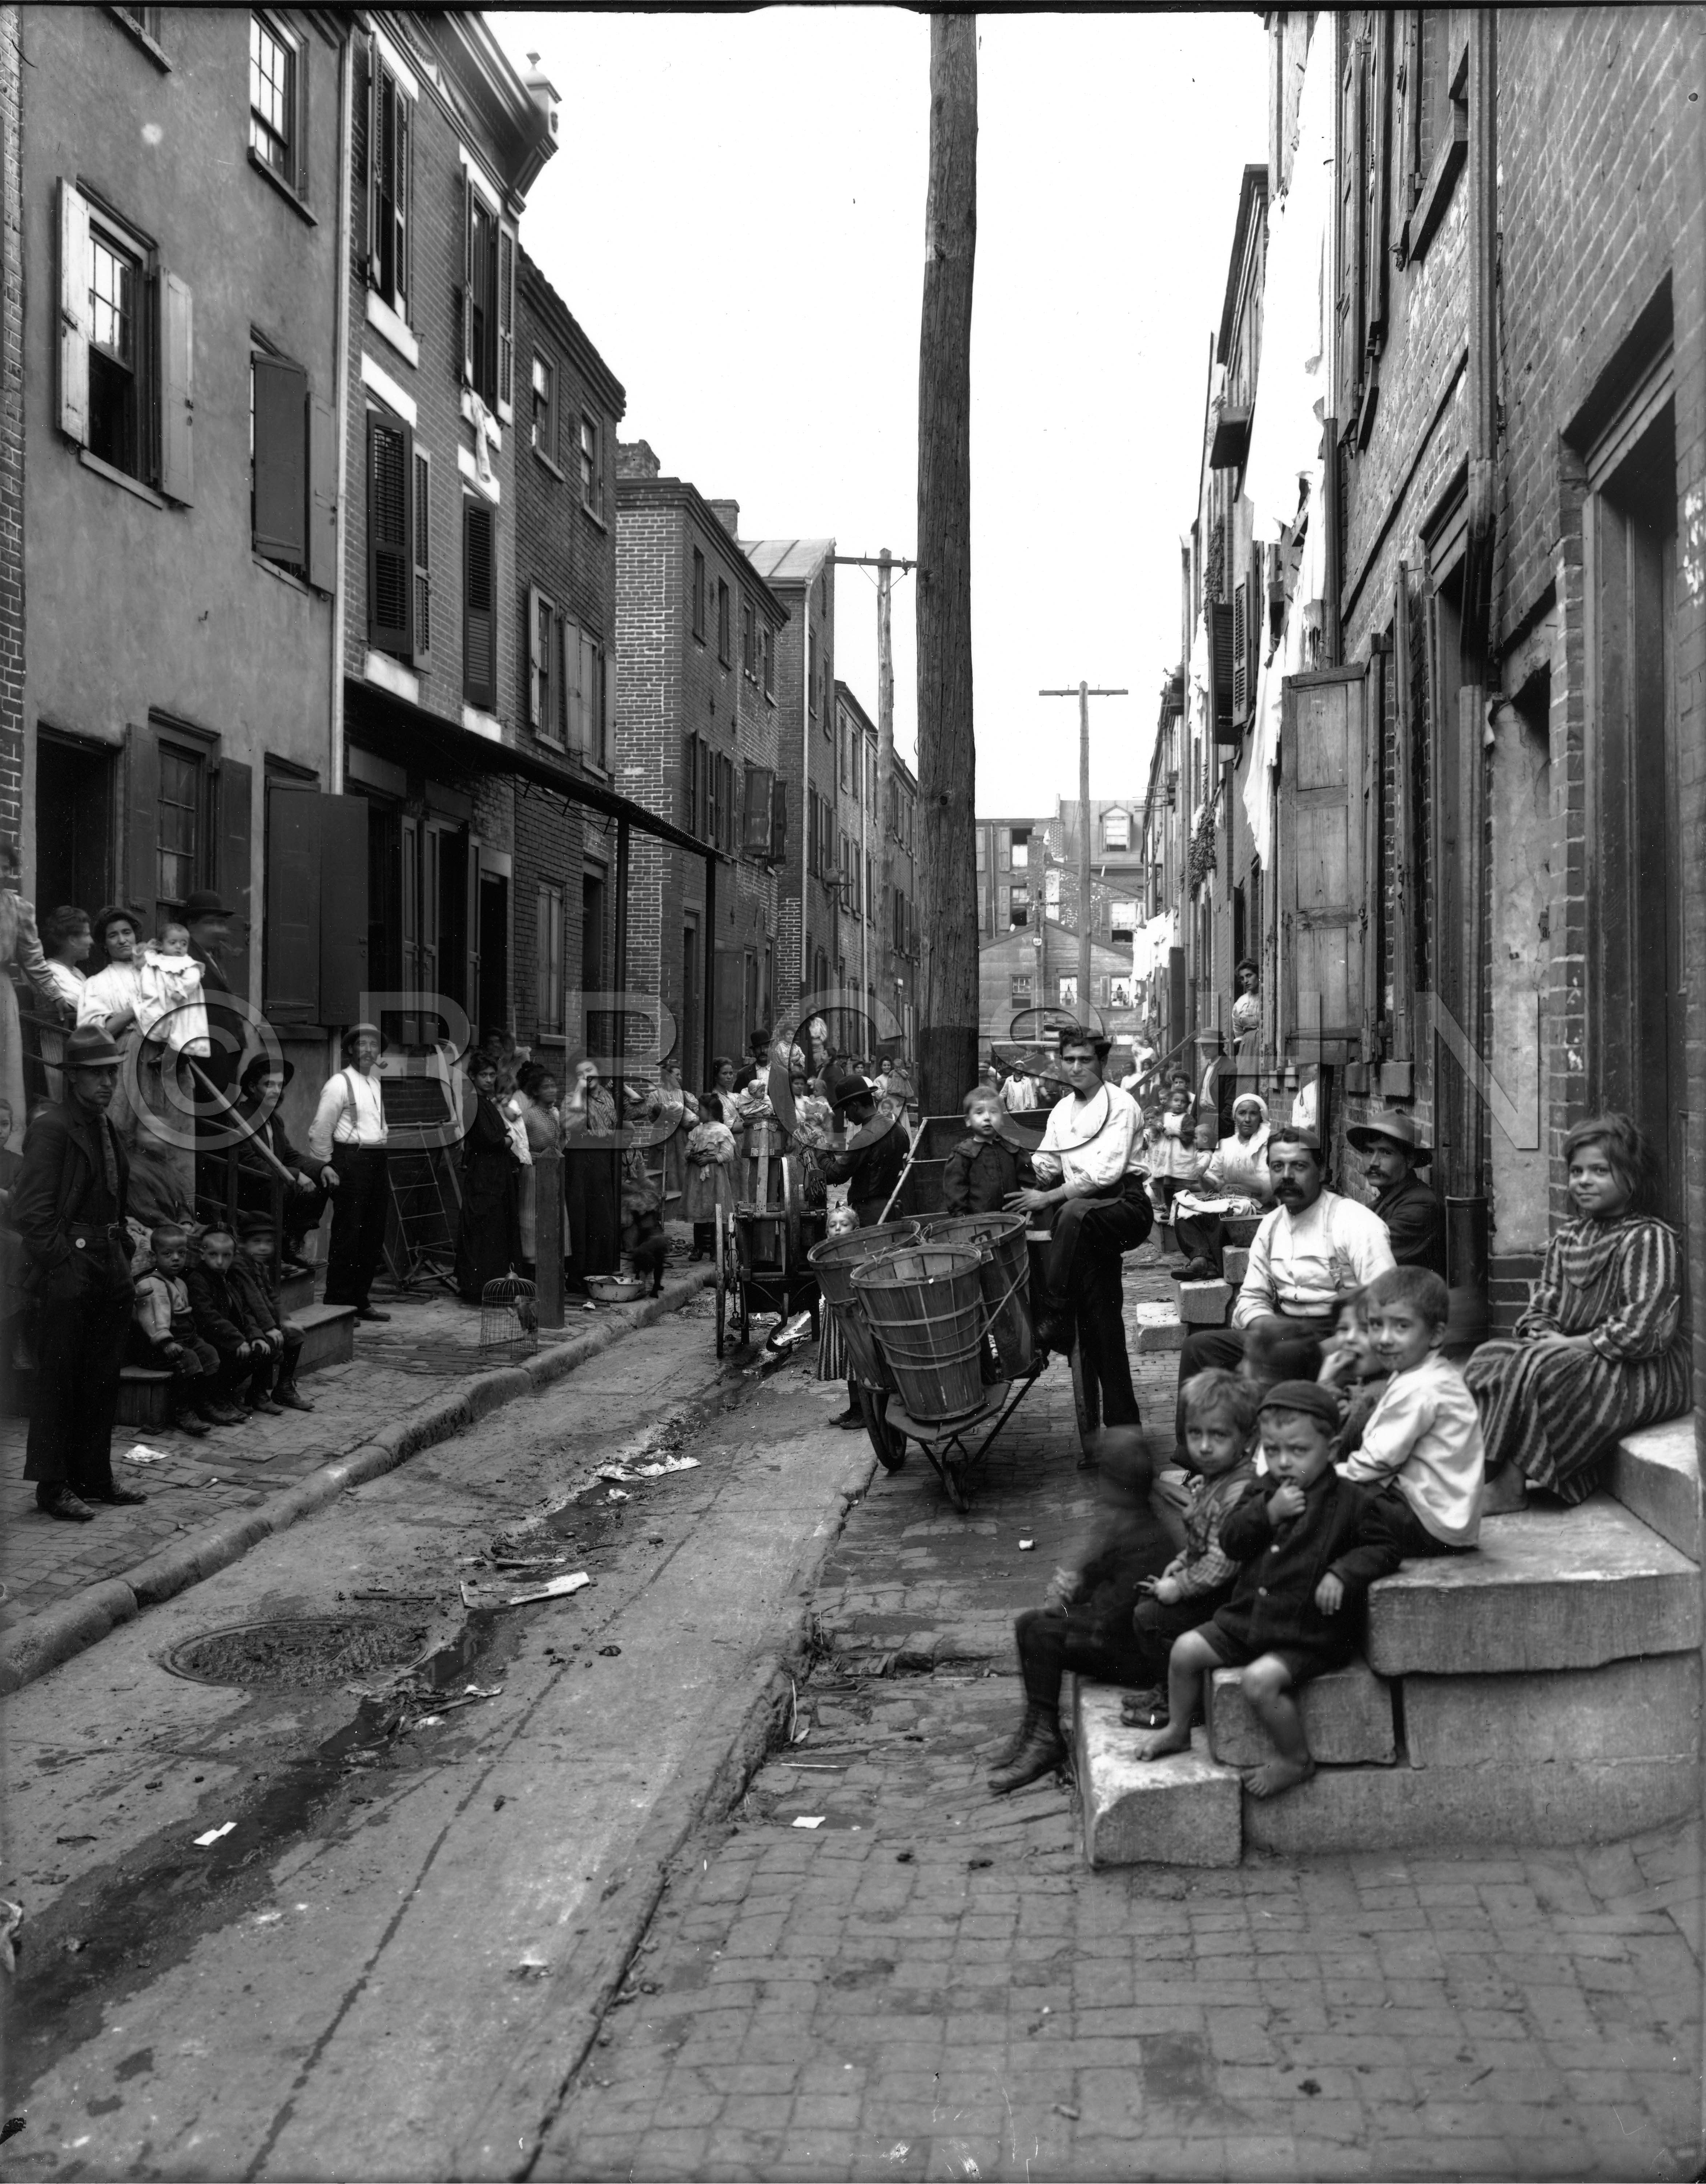 Families in Alley, 1909. Starr Centre Association of Philadelphia. Image courtesy of the Barbara Bates Center for the Study of the History of Nursing.